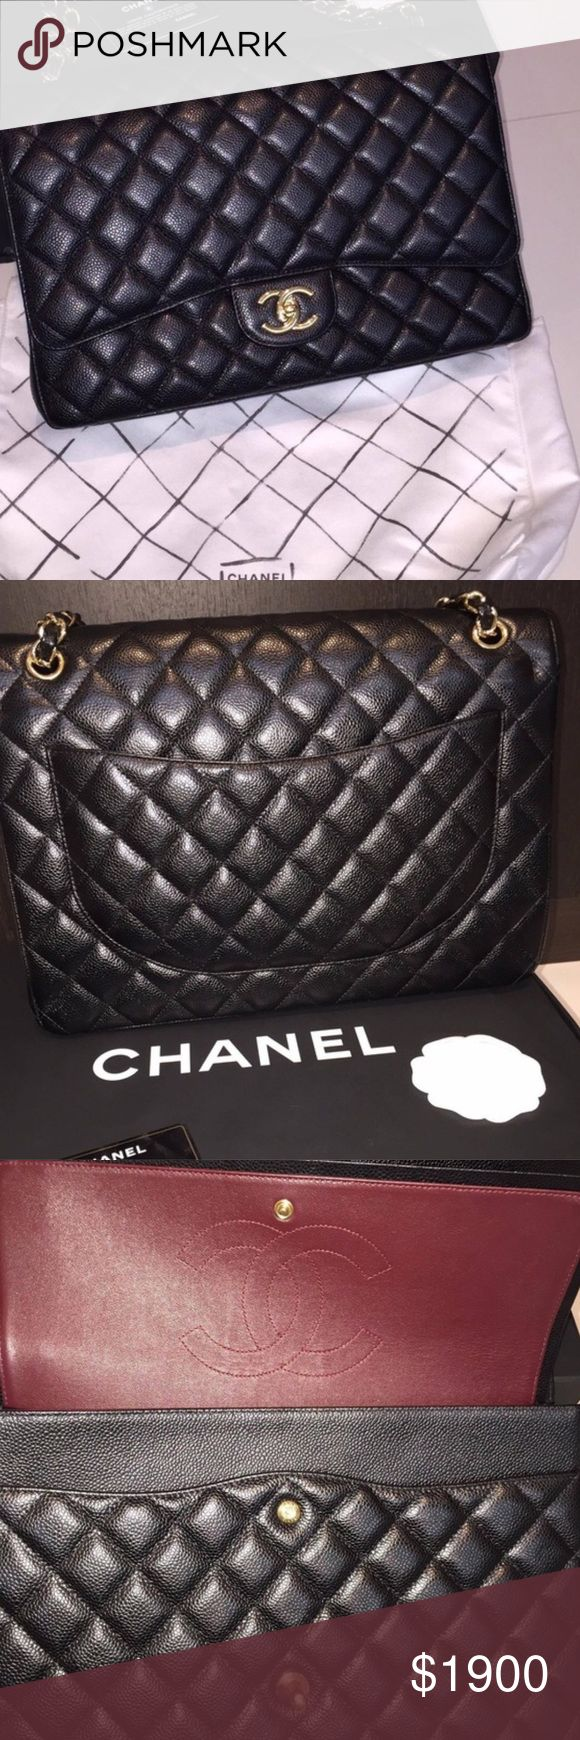 $1220💕Still Available 💕Chanel Double Flap Chanel Double Flap! PayPal only. Please message all questions, comments or inquiries to CanonEBags@aol.com ! I do not check comments here. If you aren't comfortable with PayPal I am sorry ! 💋💋💋 CHANEL Bags Shoulder Bags